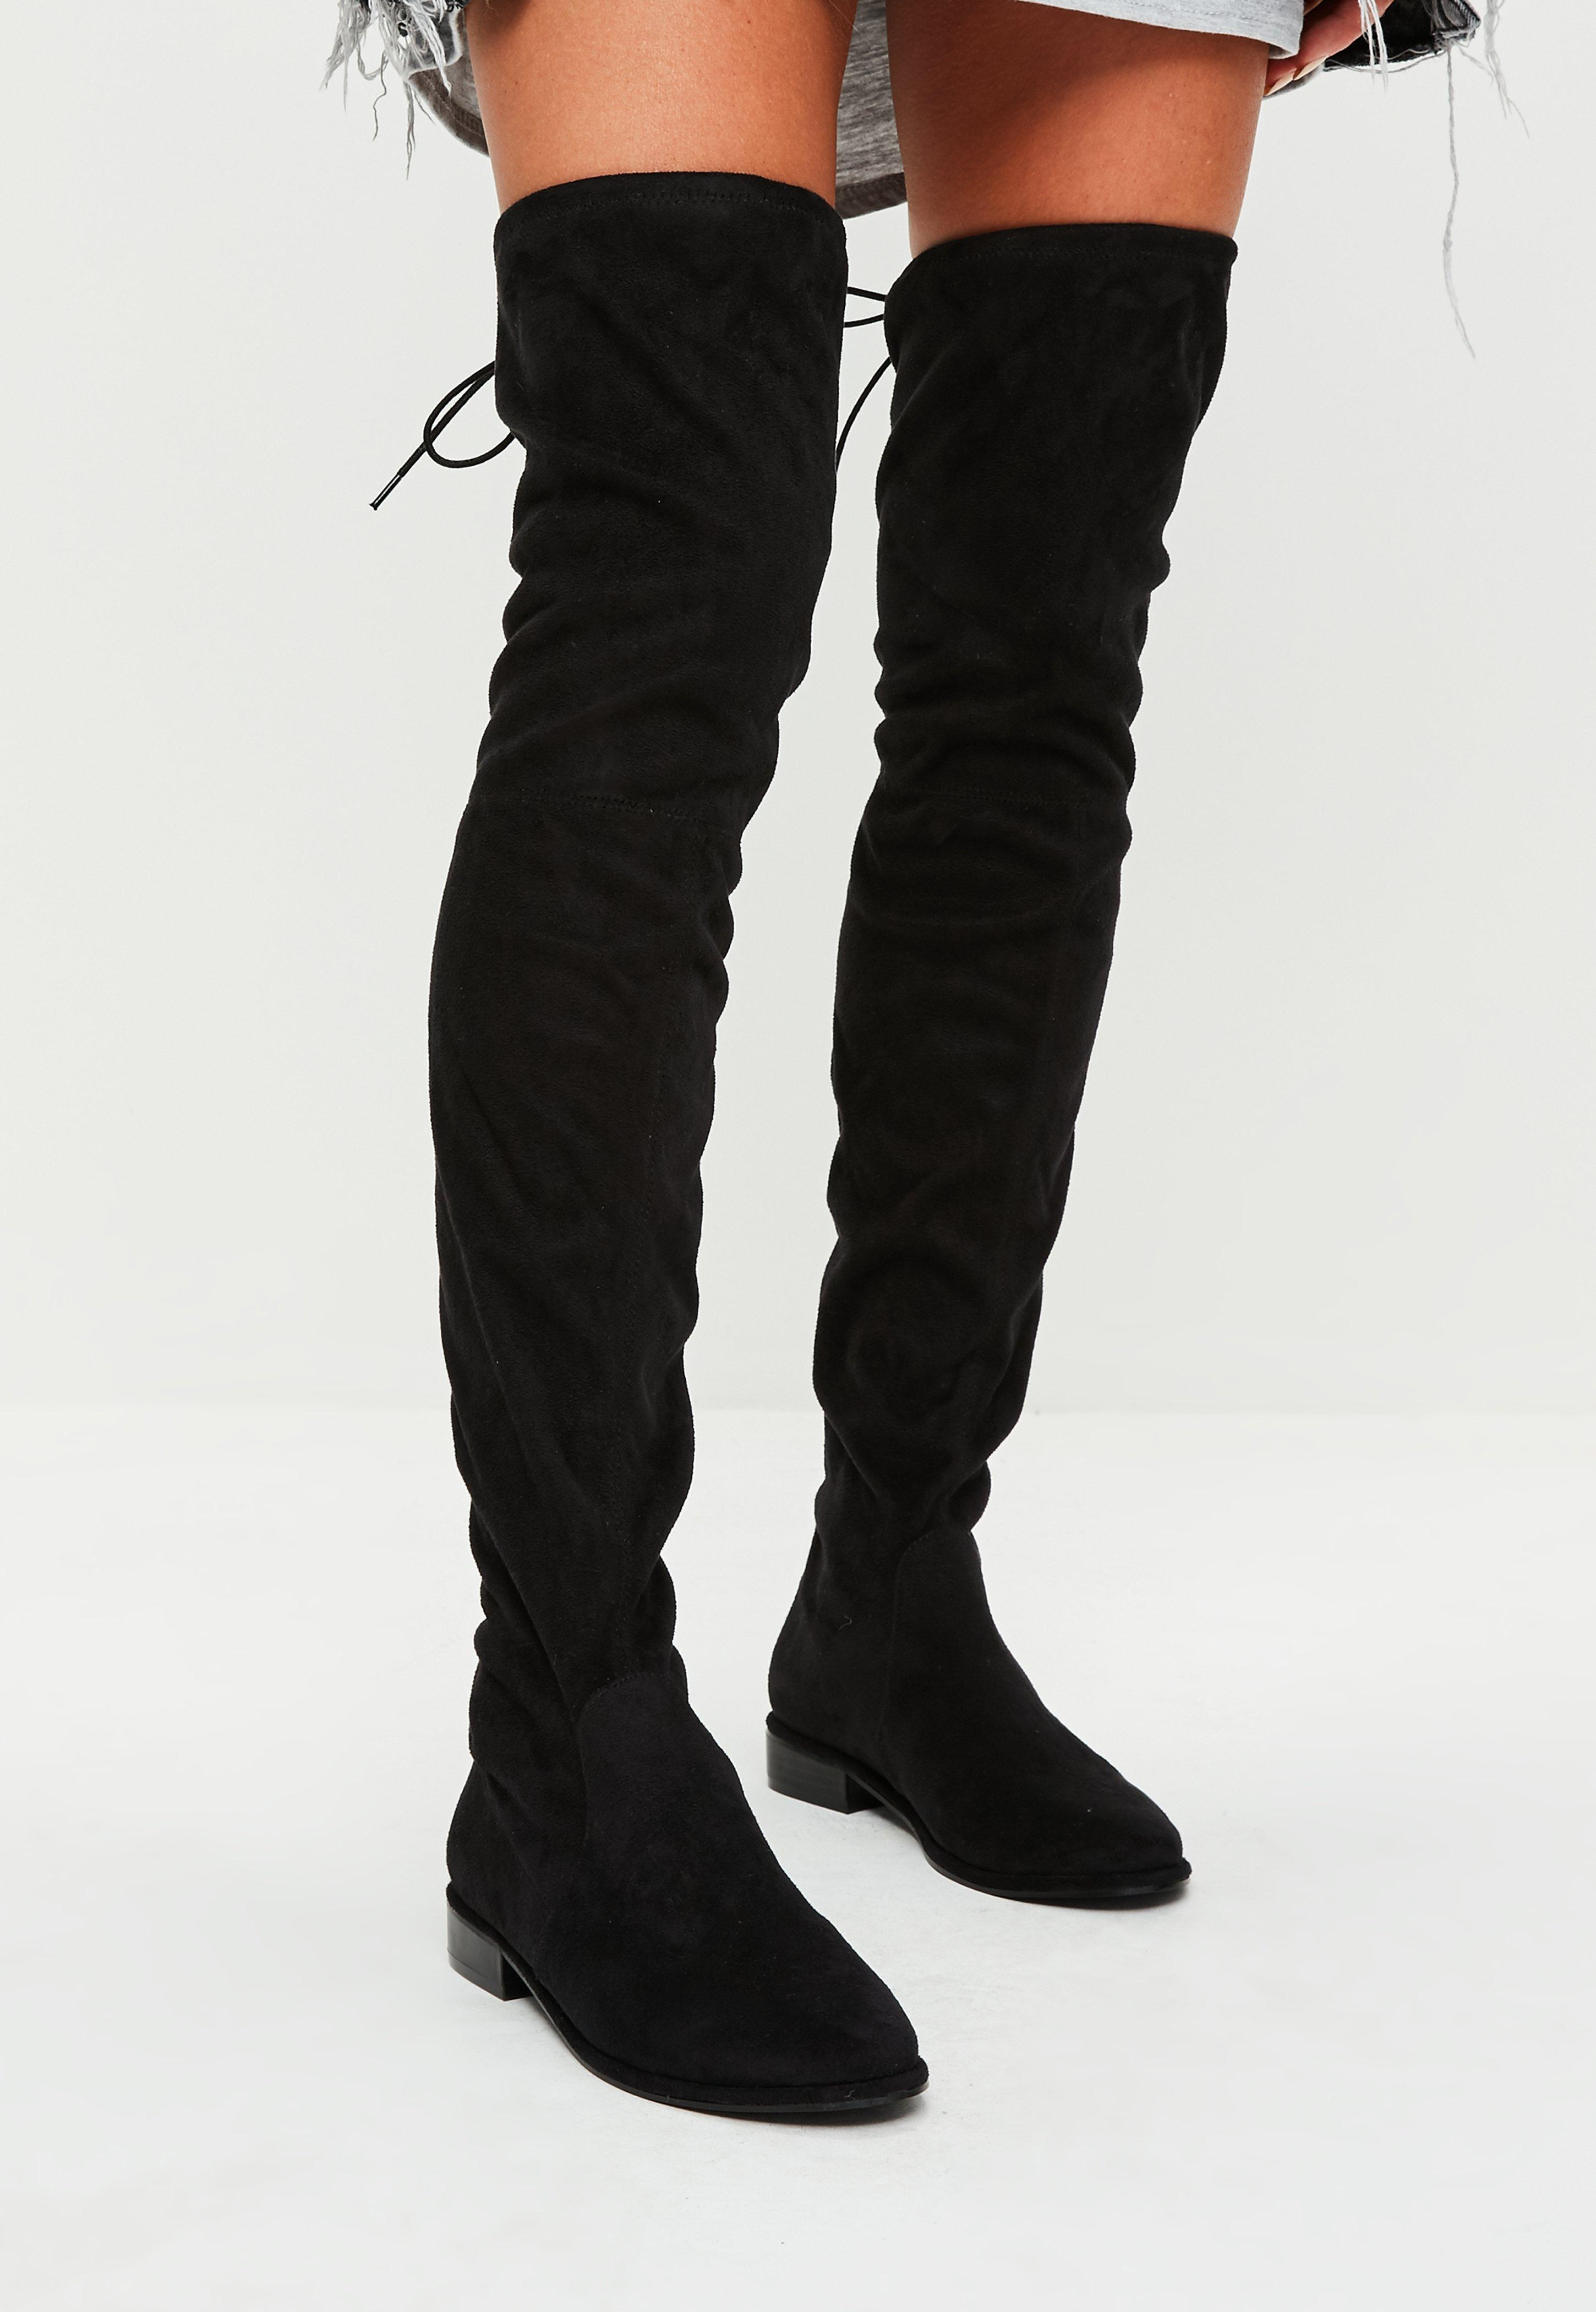 over knee boots black over the knee boots   missguided fwffksd